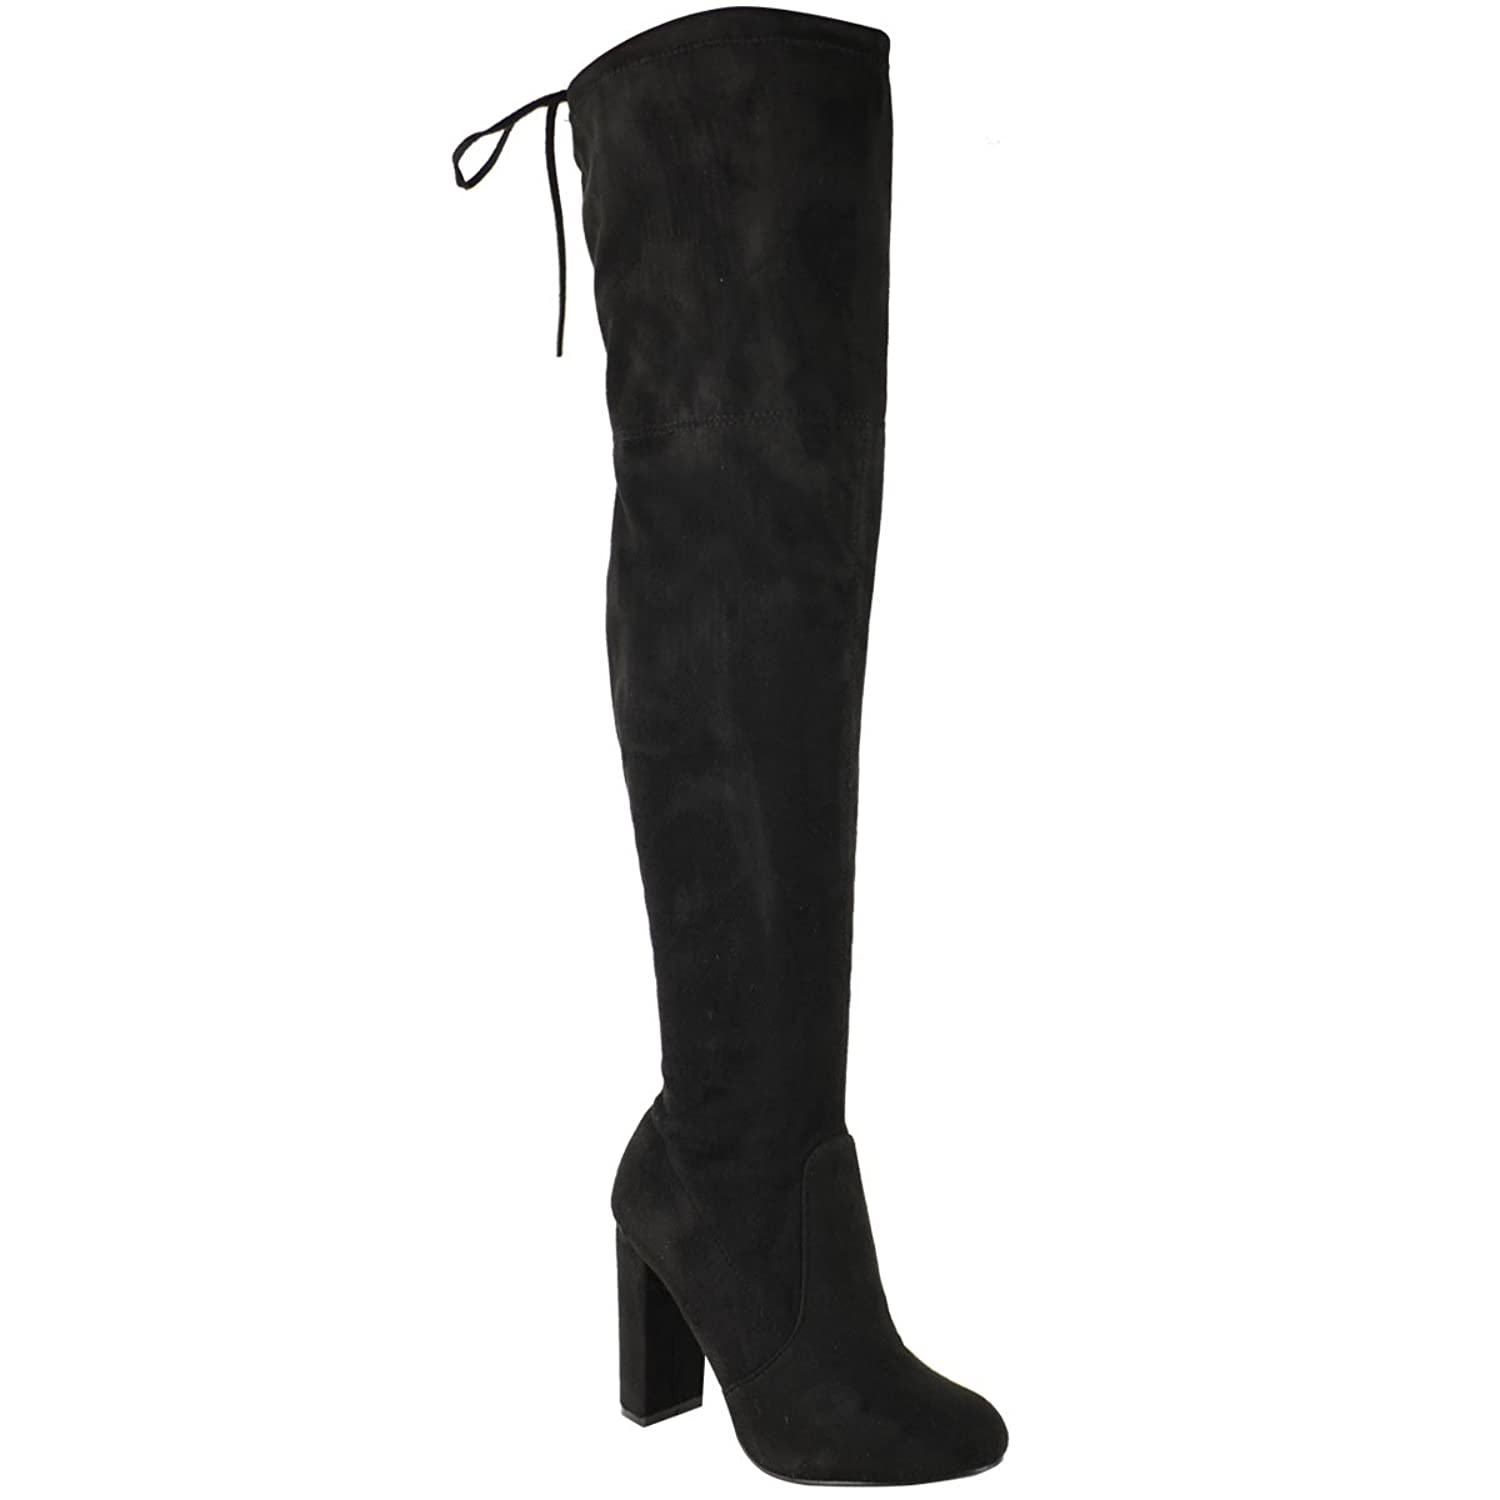 b53ec864bbb WOMENS LADIES THIGH HIGH BOOTS OVER THE KNEE PARTY STRETCH BLOCK MID HEEL  SIZE